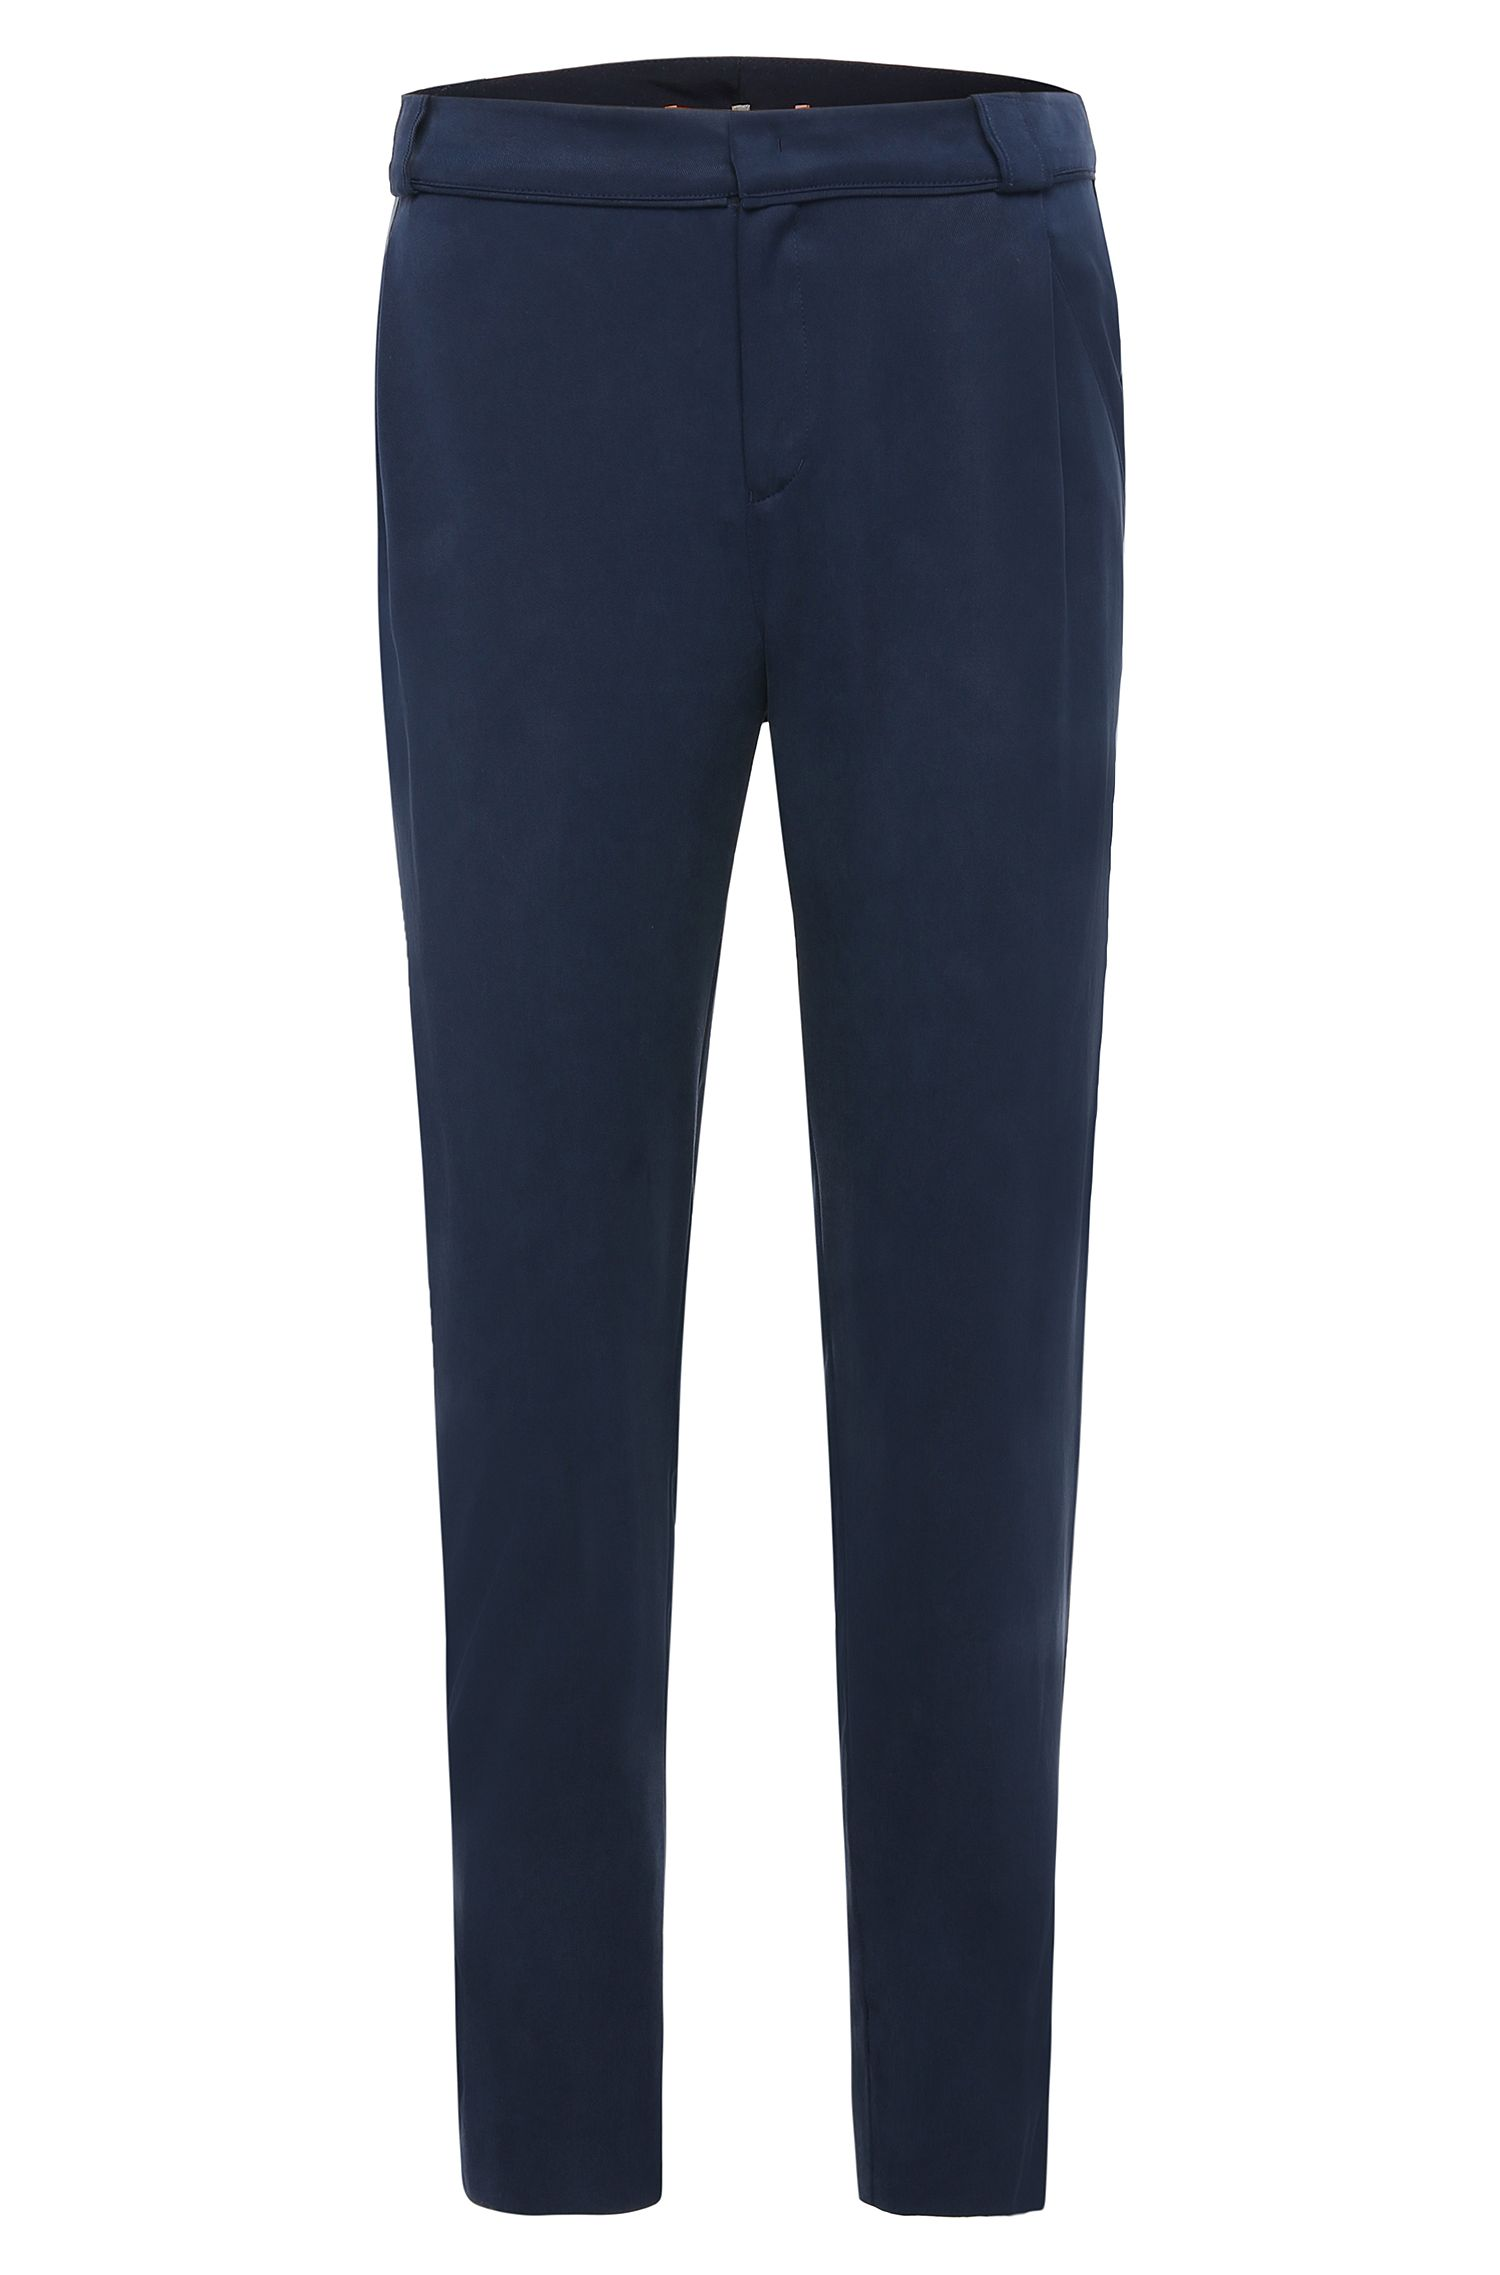 Comfort-fit trousers in fabric blend: 'Sacuty'